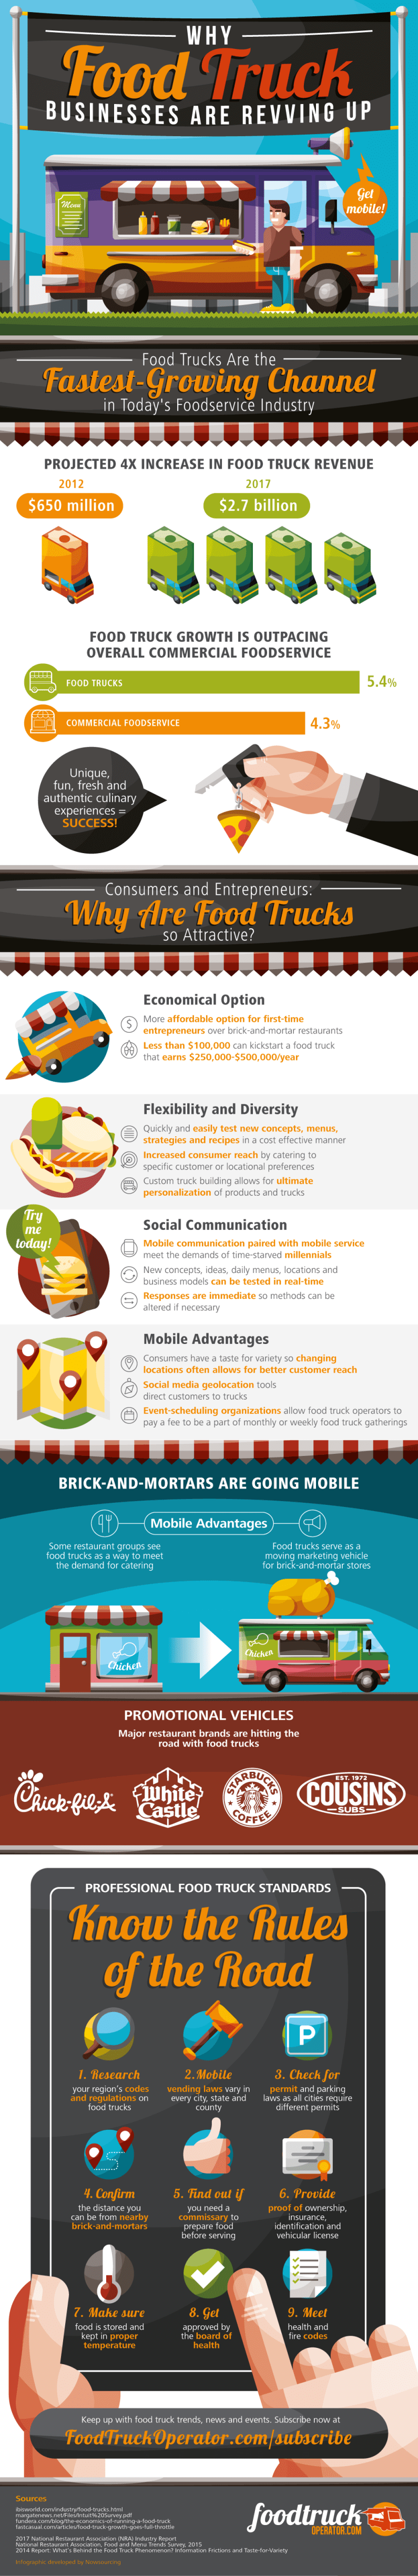 Why Food Truck Businesses Are Revving Up [infographic]